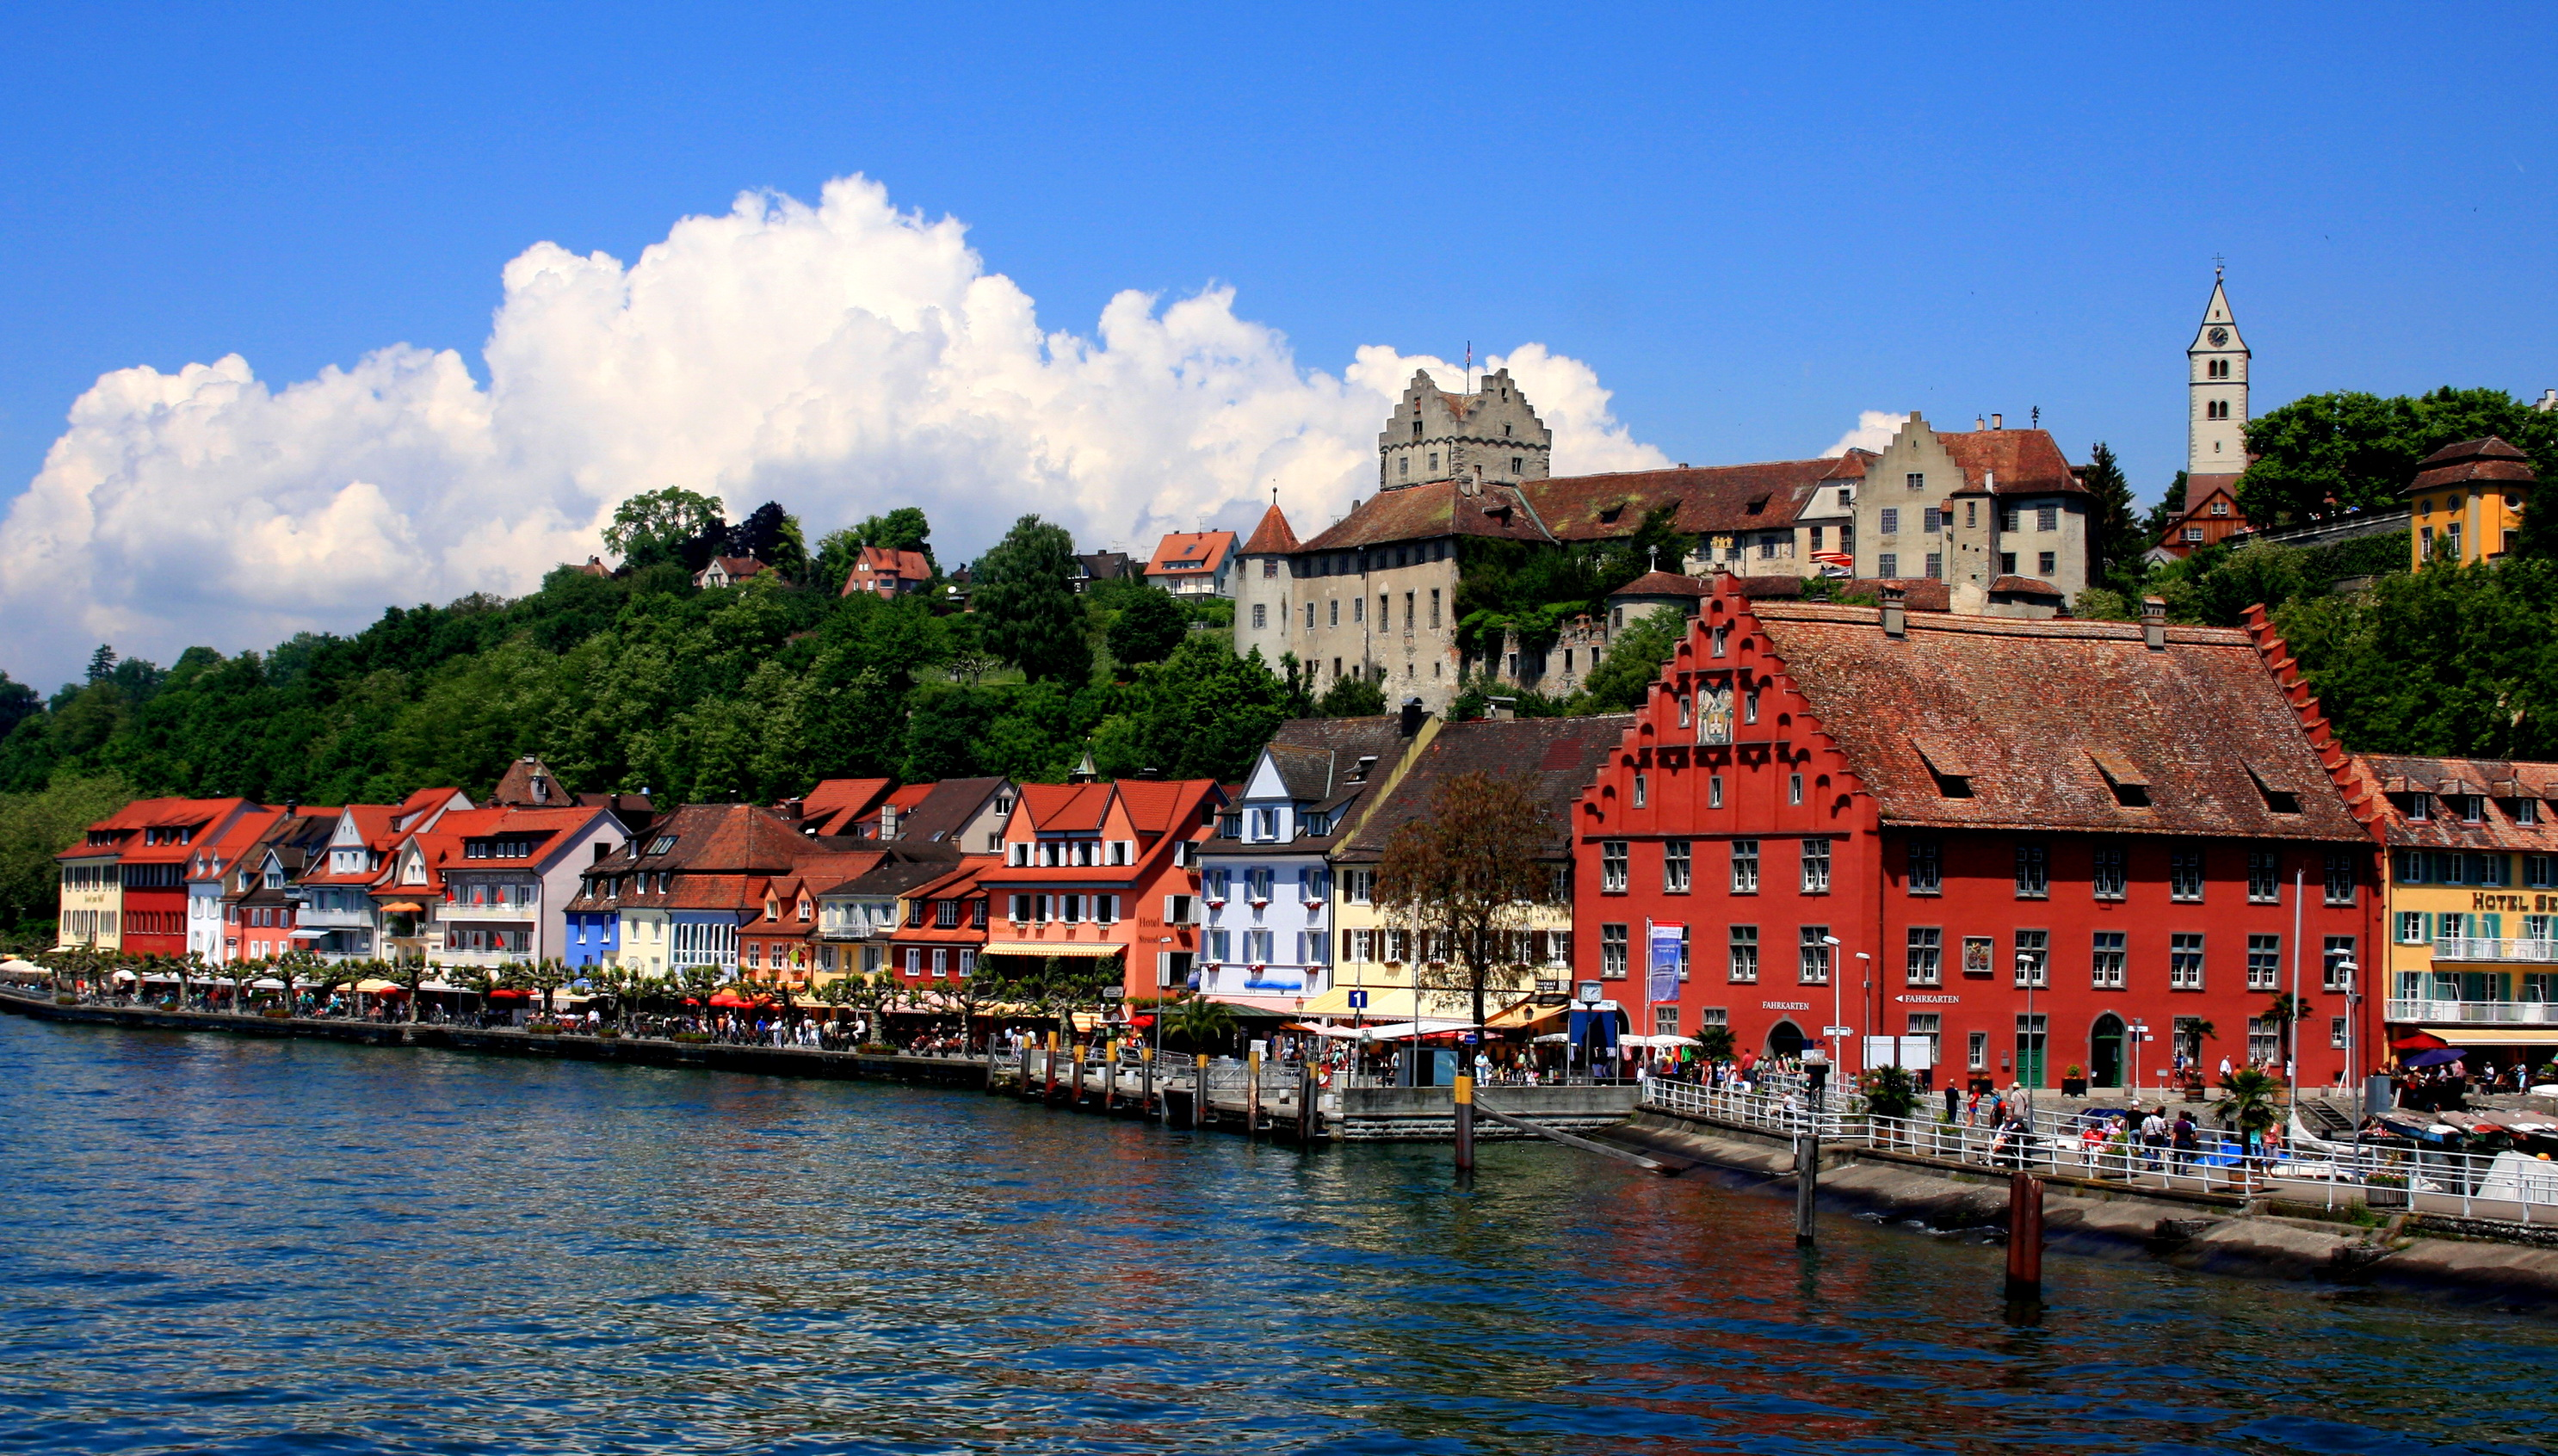 Hagnau Germany  City pictures : Germany Houses Coast Hagnau am Bodensee Cities wallpaper | 2972x1692 ...